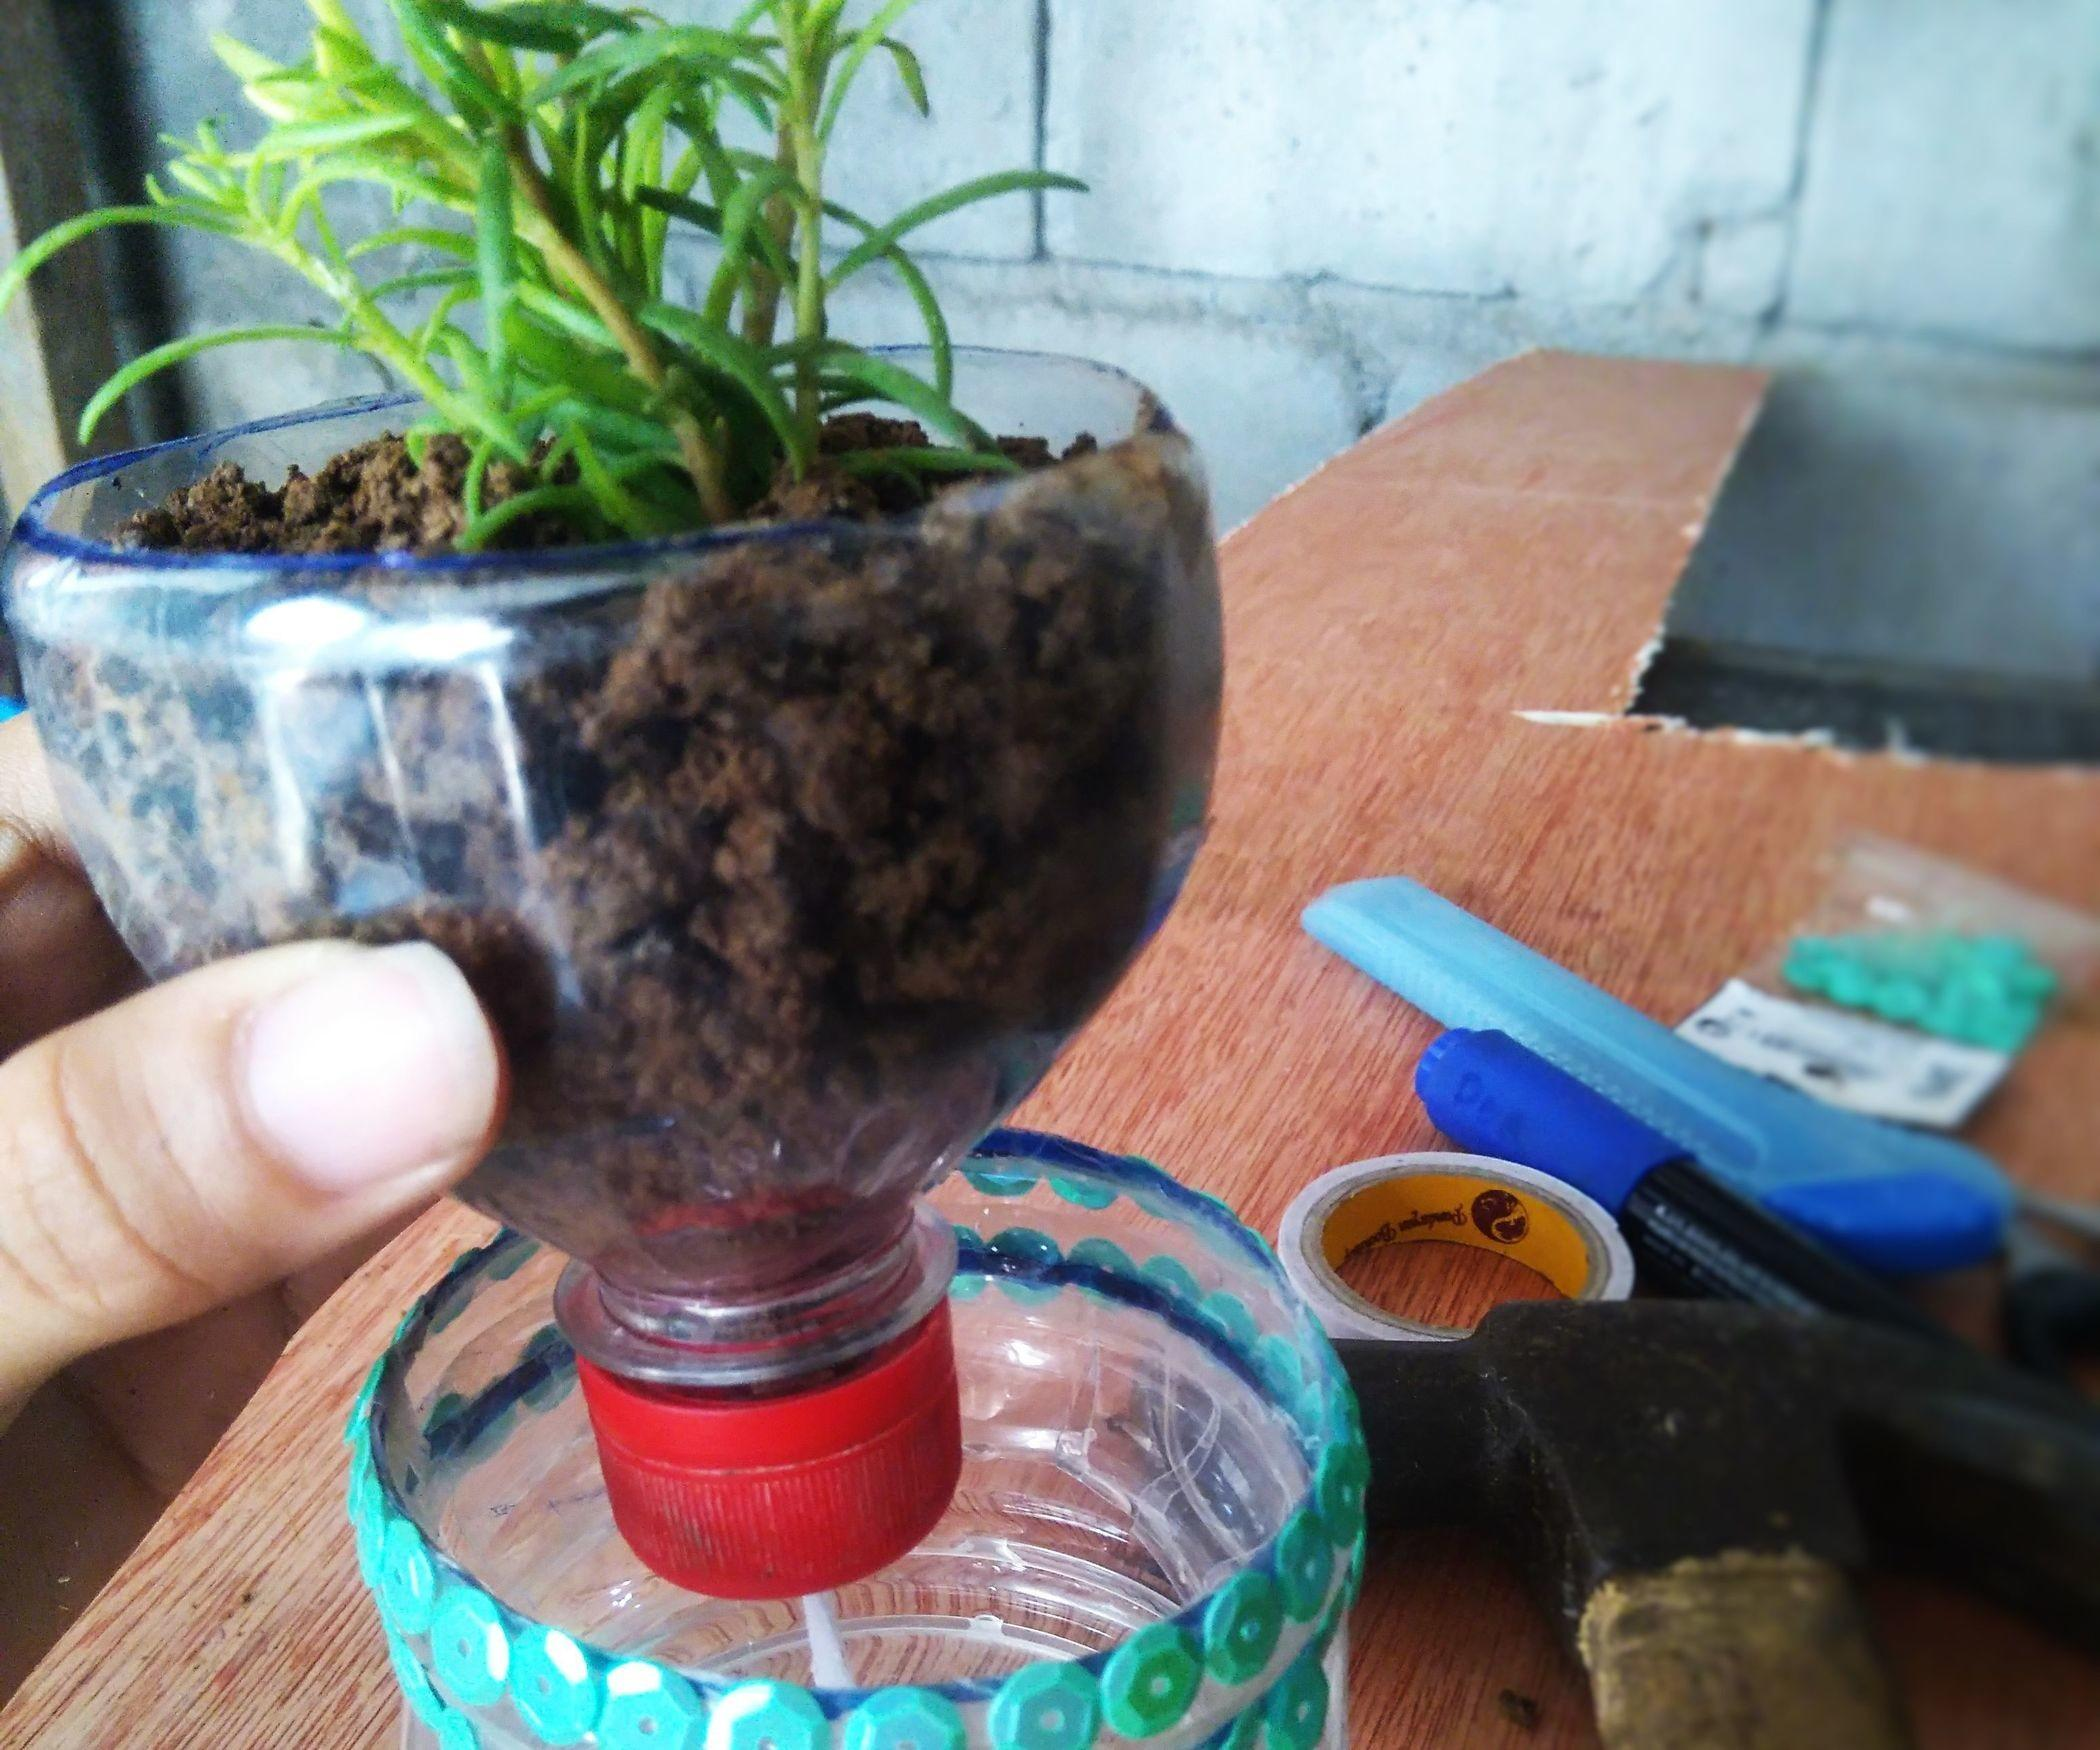 Upcycled Plastic Bottle Into Self Watering Planter